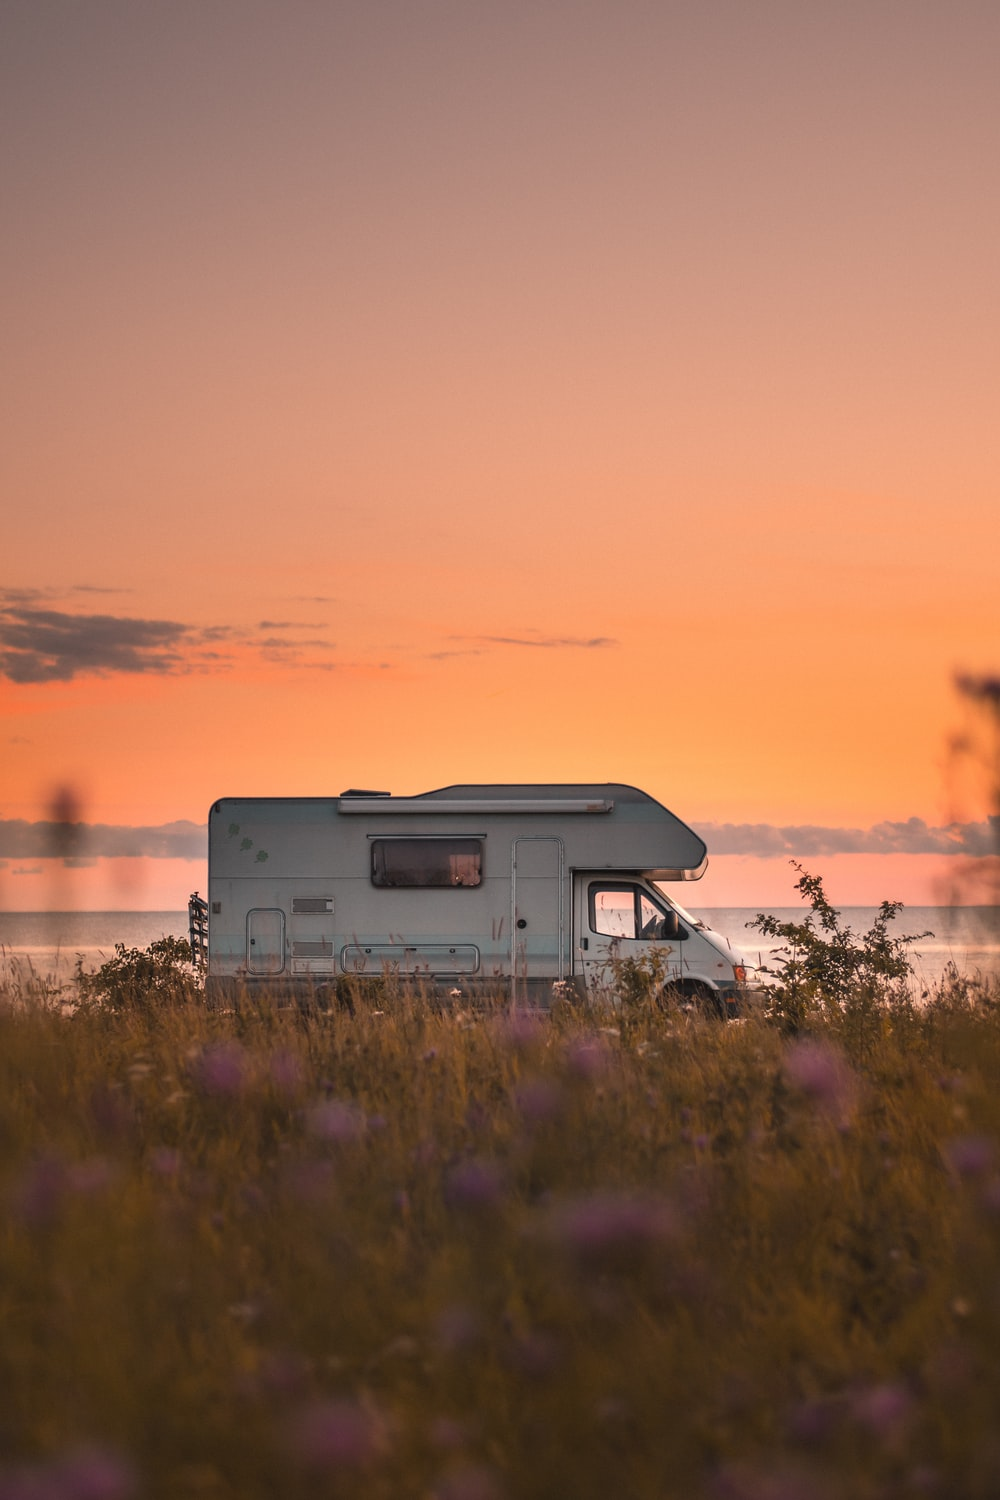 white and gray rv on green grass field during sunset